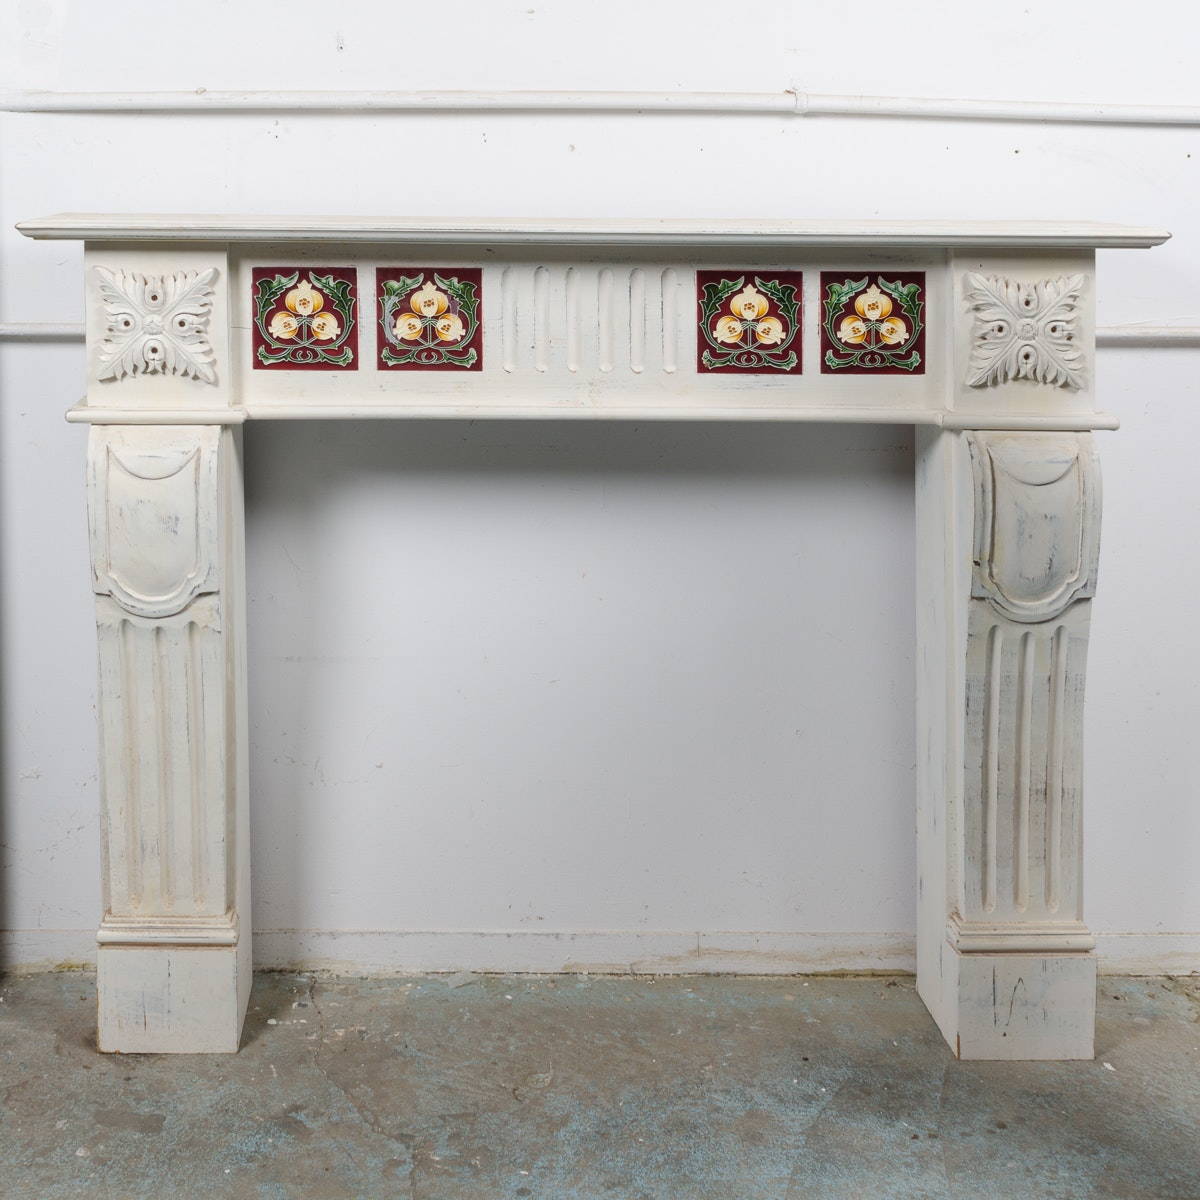 Vintage Wooden Fireplace Mantel with Floral Tiles